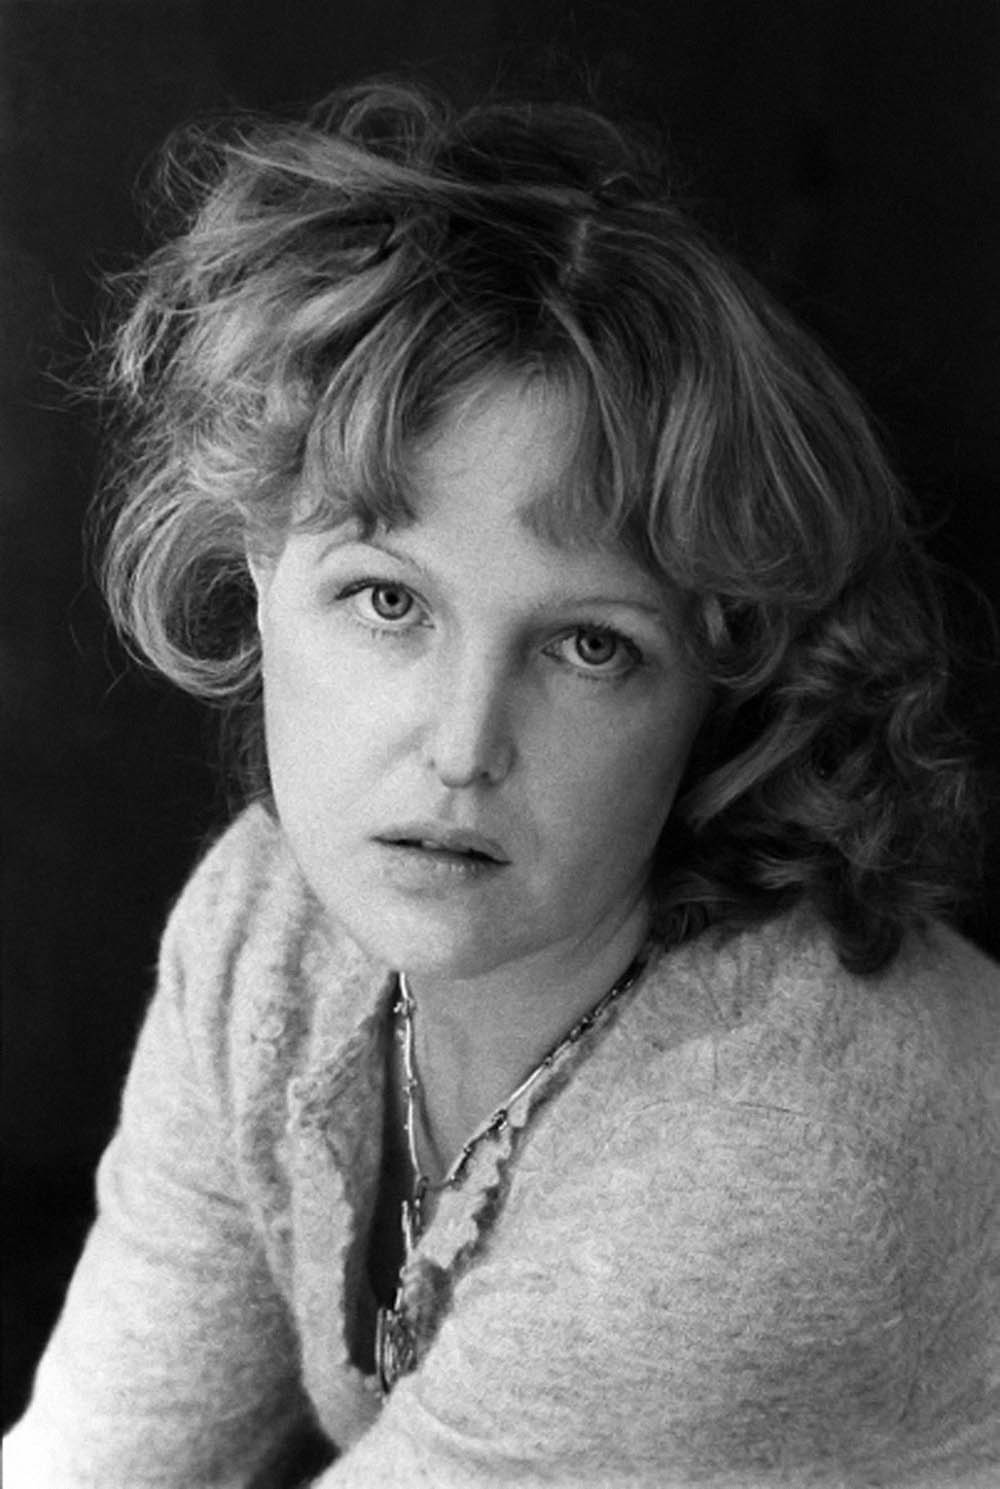 Filmography Zbrueva Alexander. The best films with the actor 45